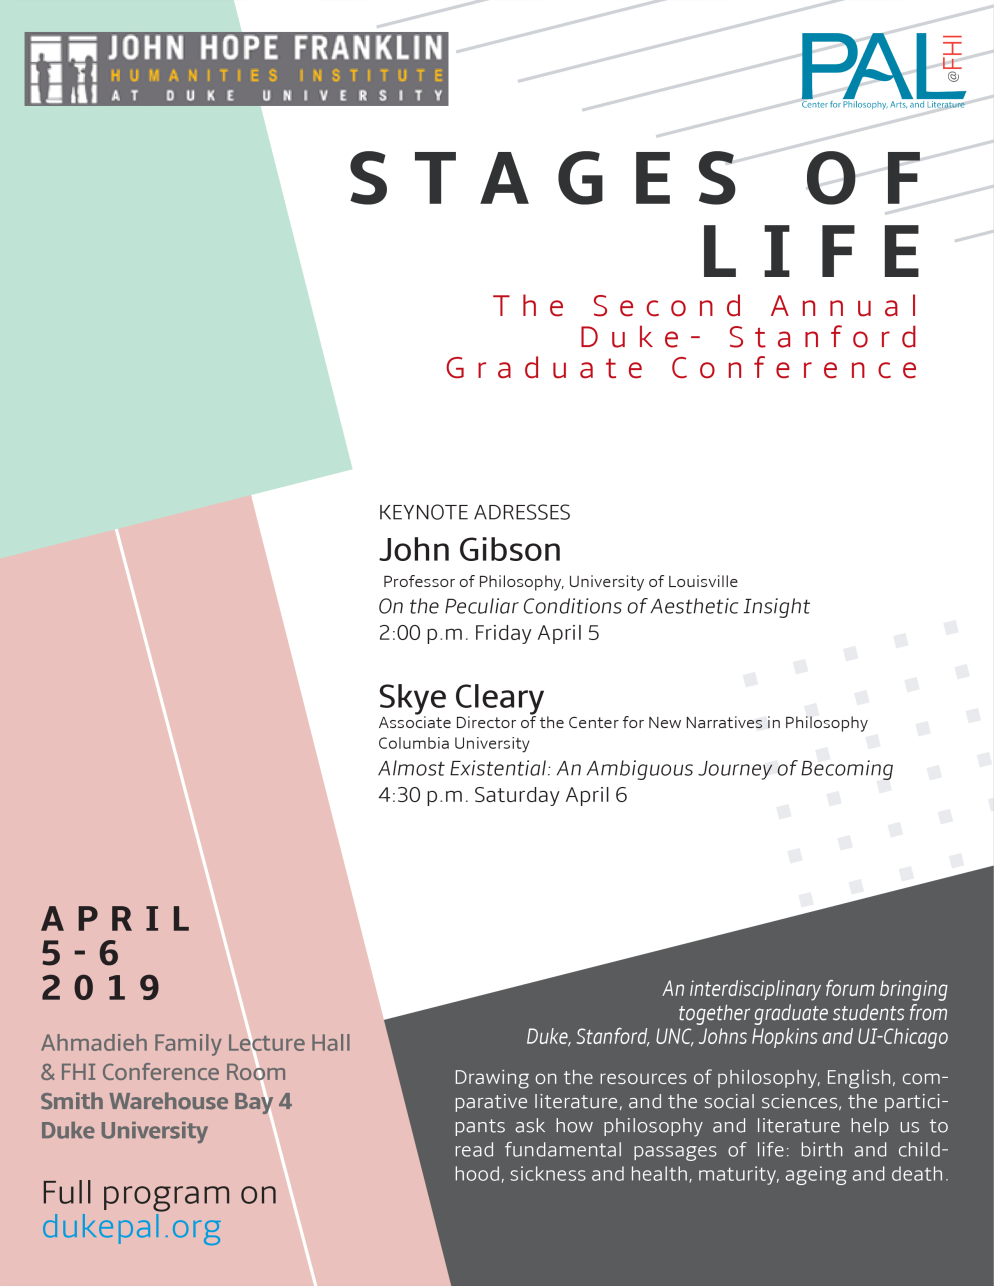 Stages of Life – The Second Annual Duke-Stanford Graduate Conference